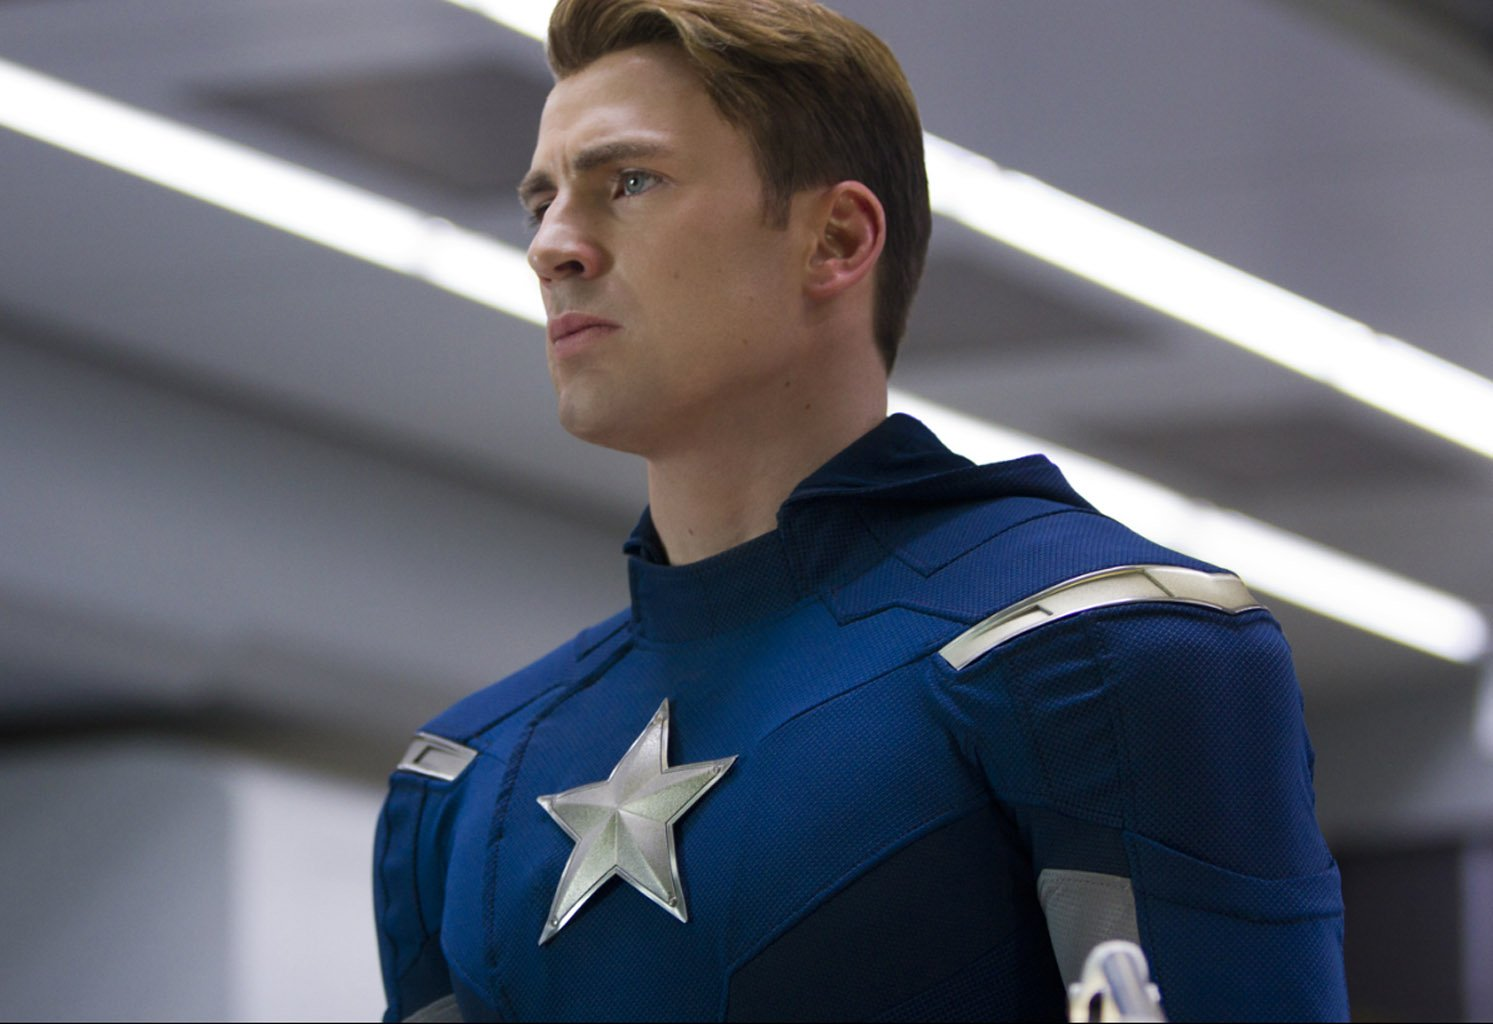 The Avengers Captain America HD Wallpapers 1493x1024